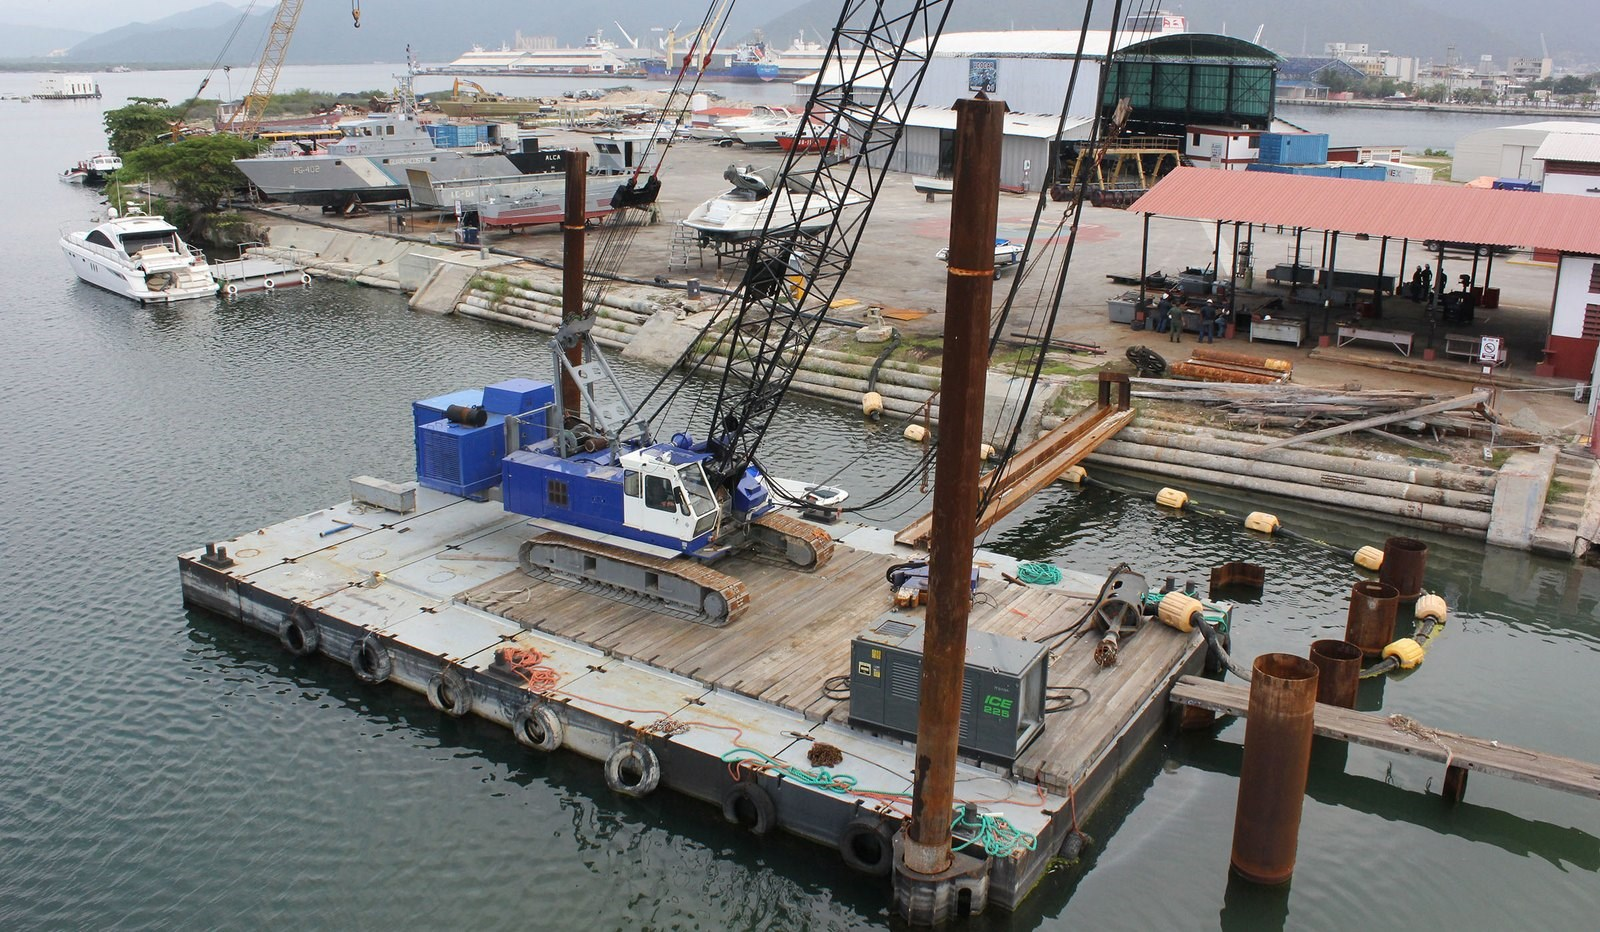 Modular Pontoon 2212 provides flexibility in remote areas at